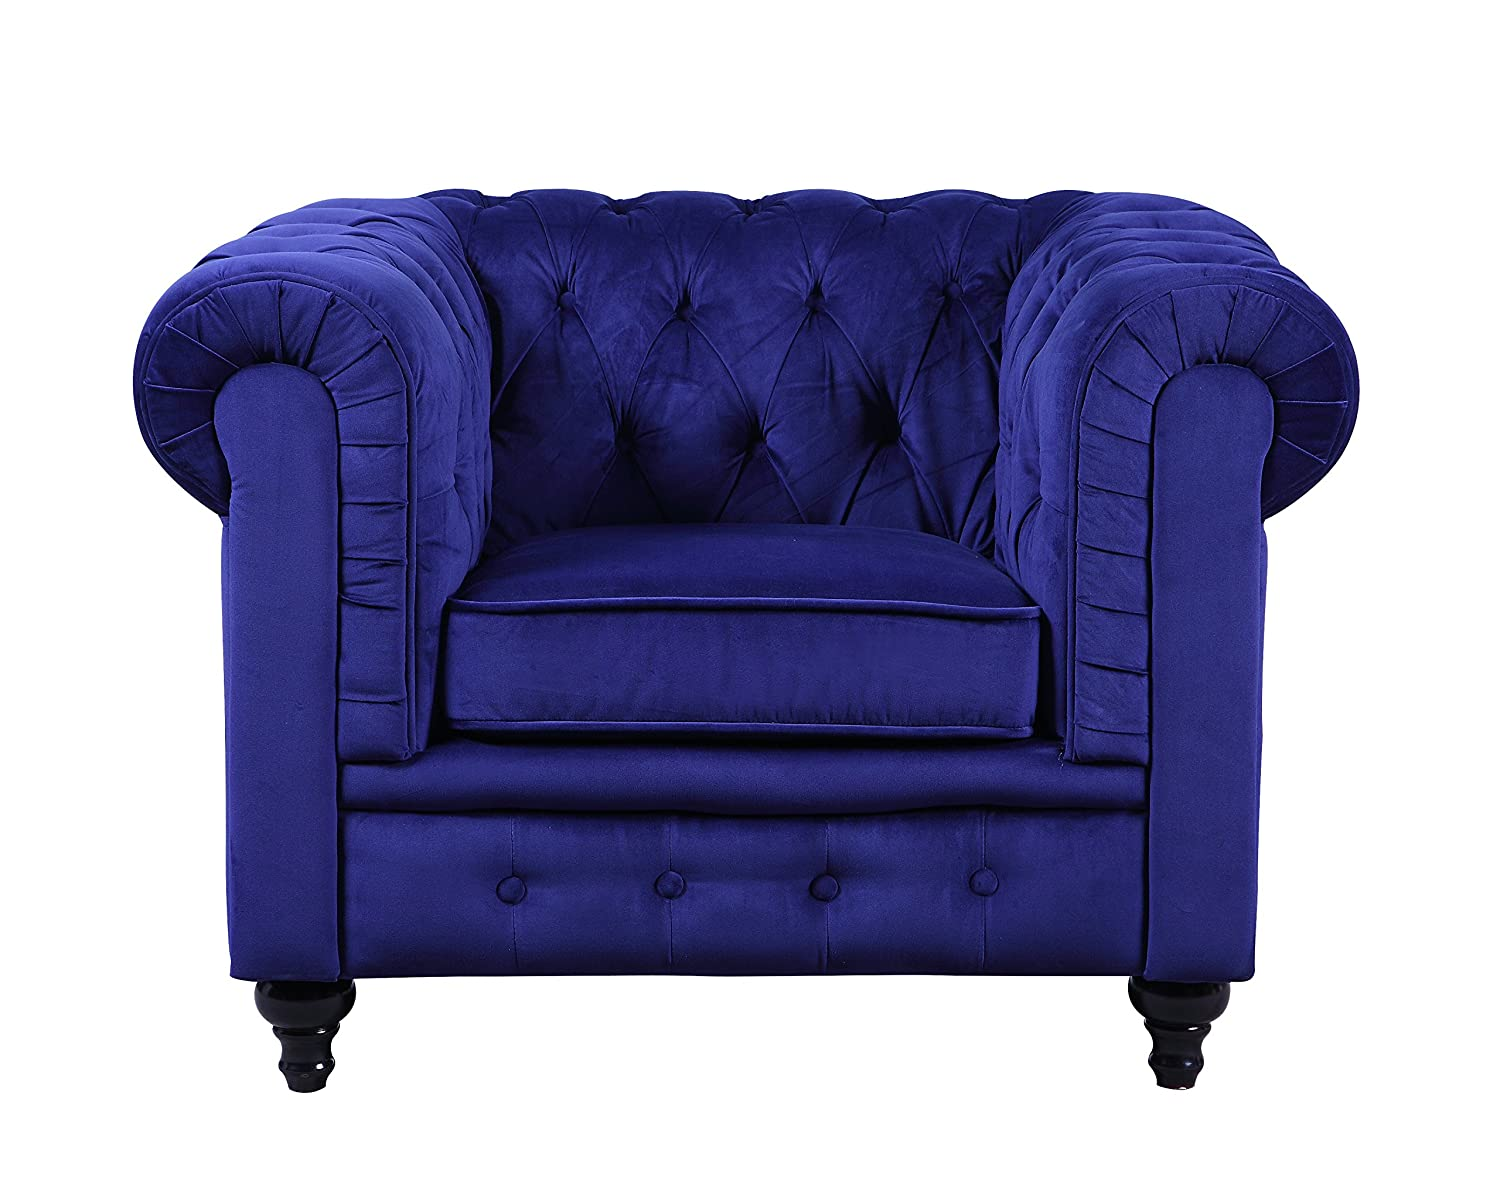 Amazon com  Classic Scroll Arm Large Velvet Living room Accent Chair Navy Blue Kitchen Dining